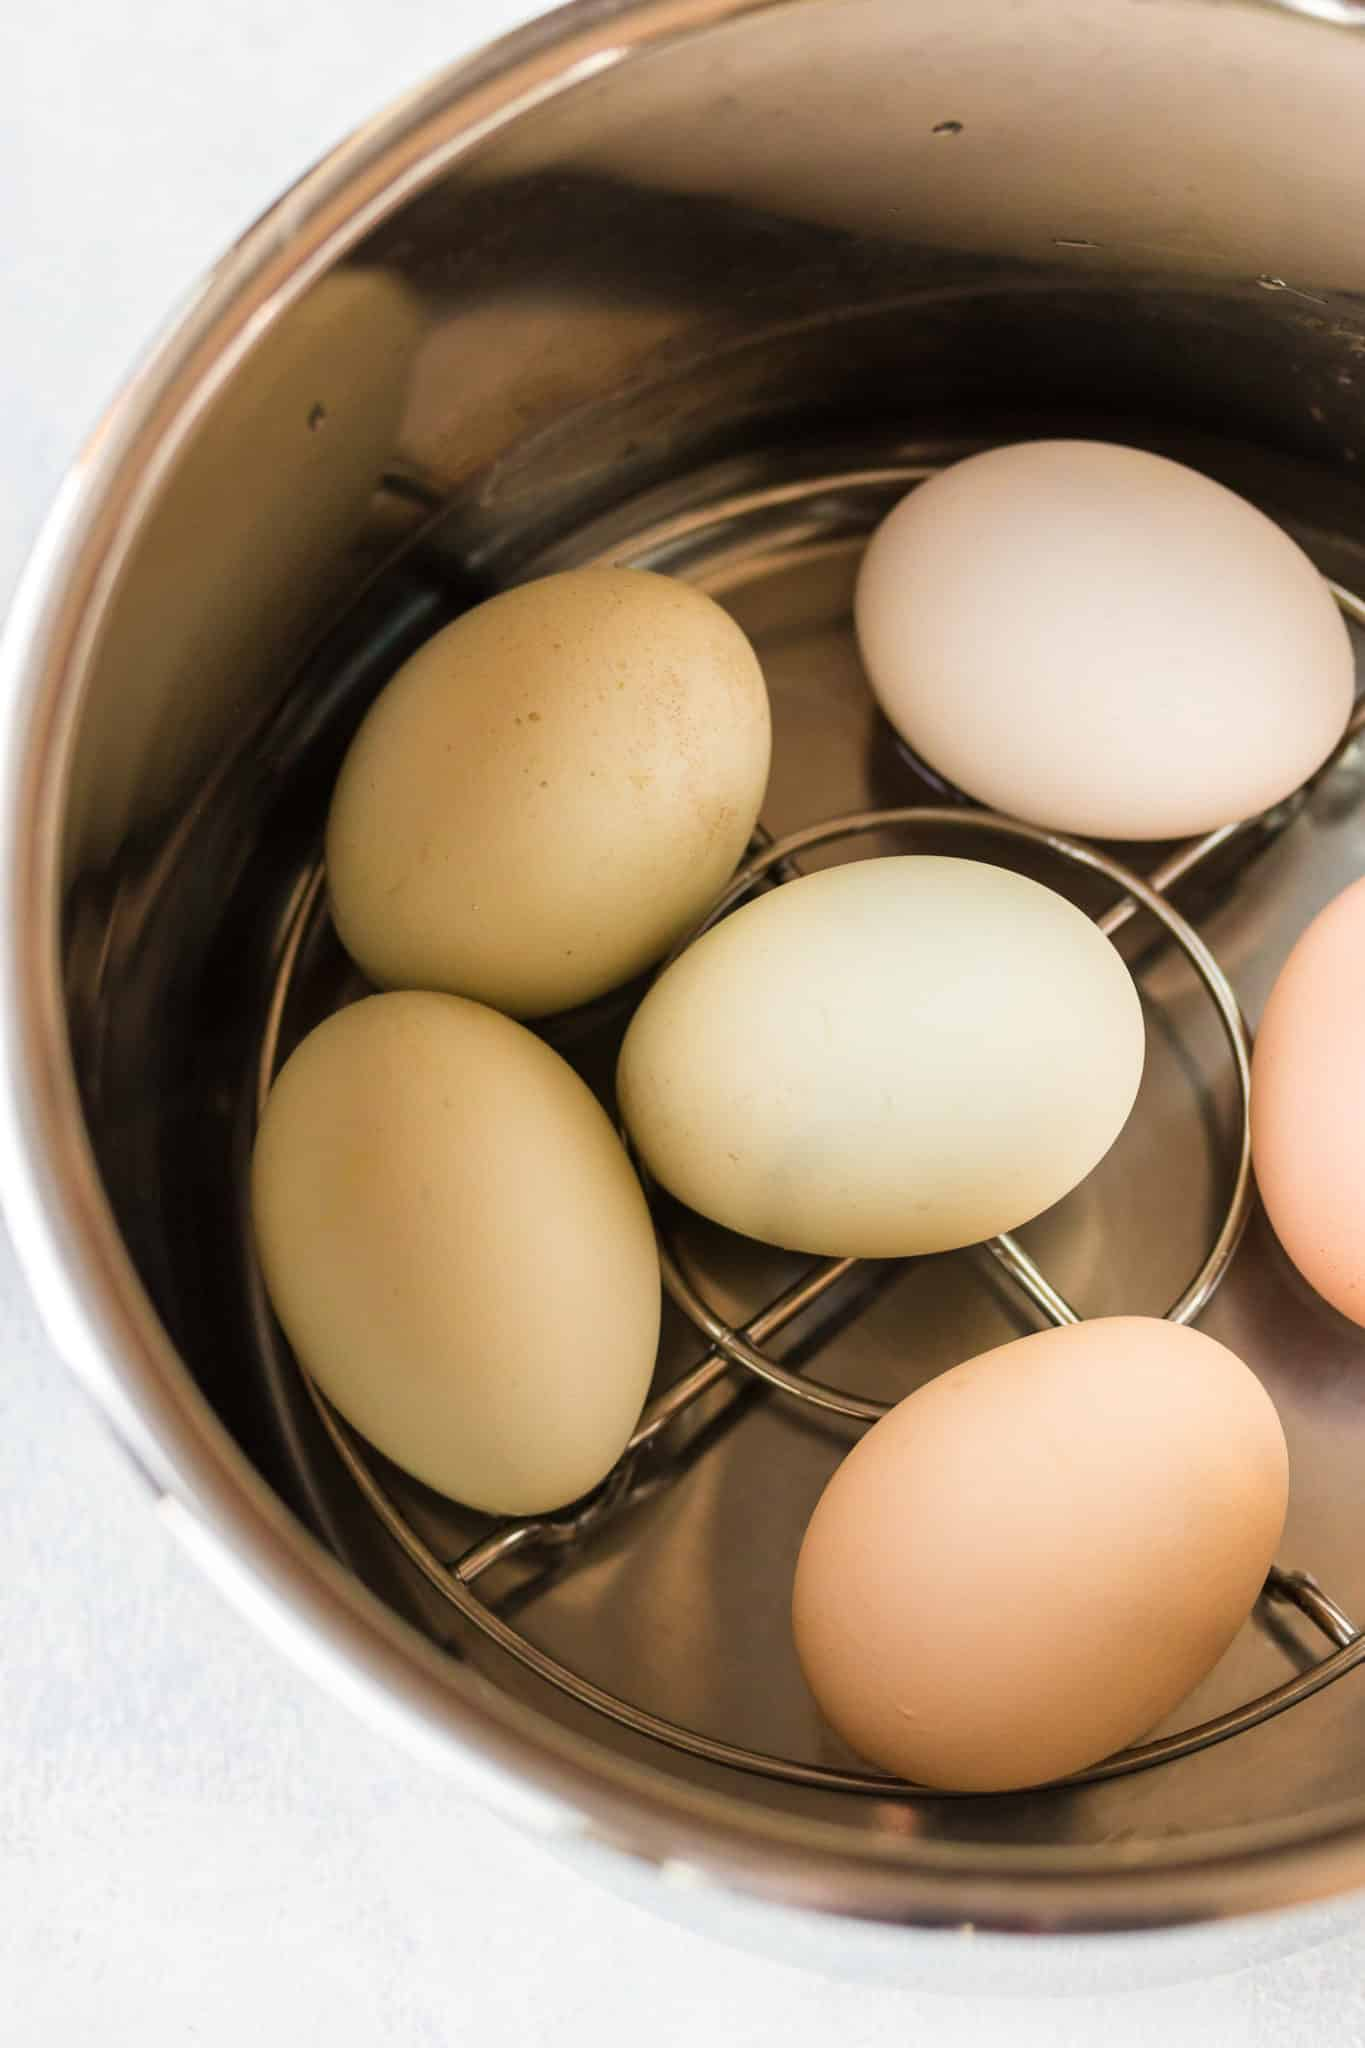 eggs inside an instant pot pressure cooker ready to be cooked